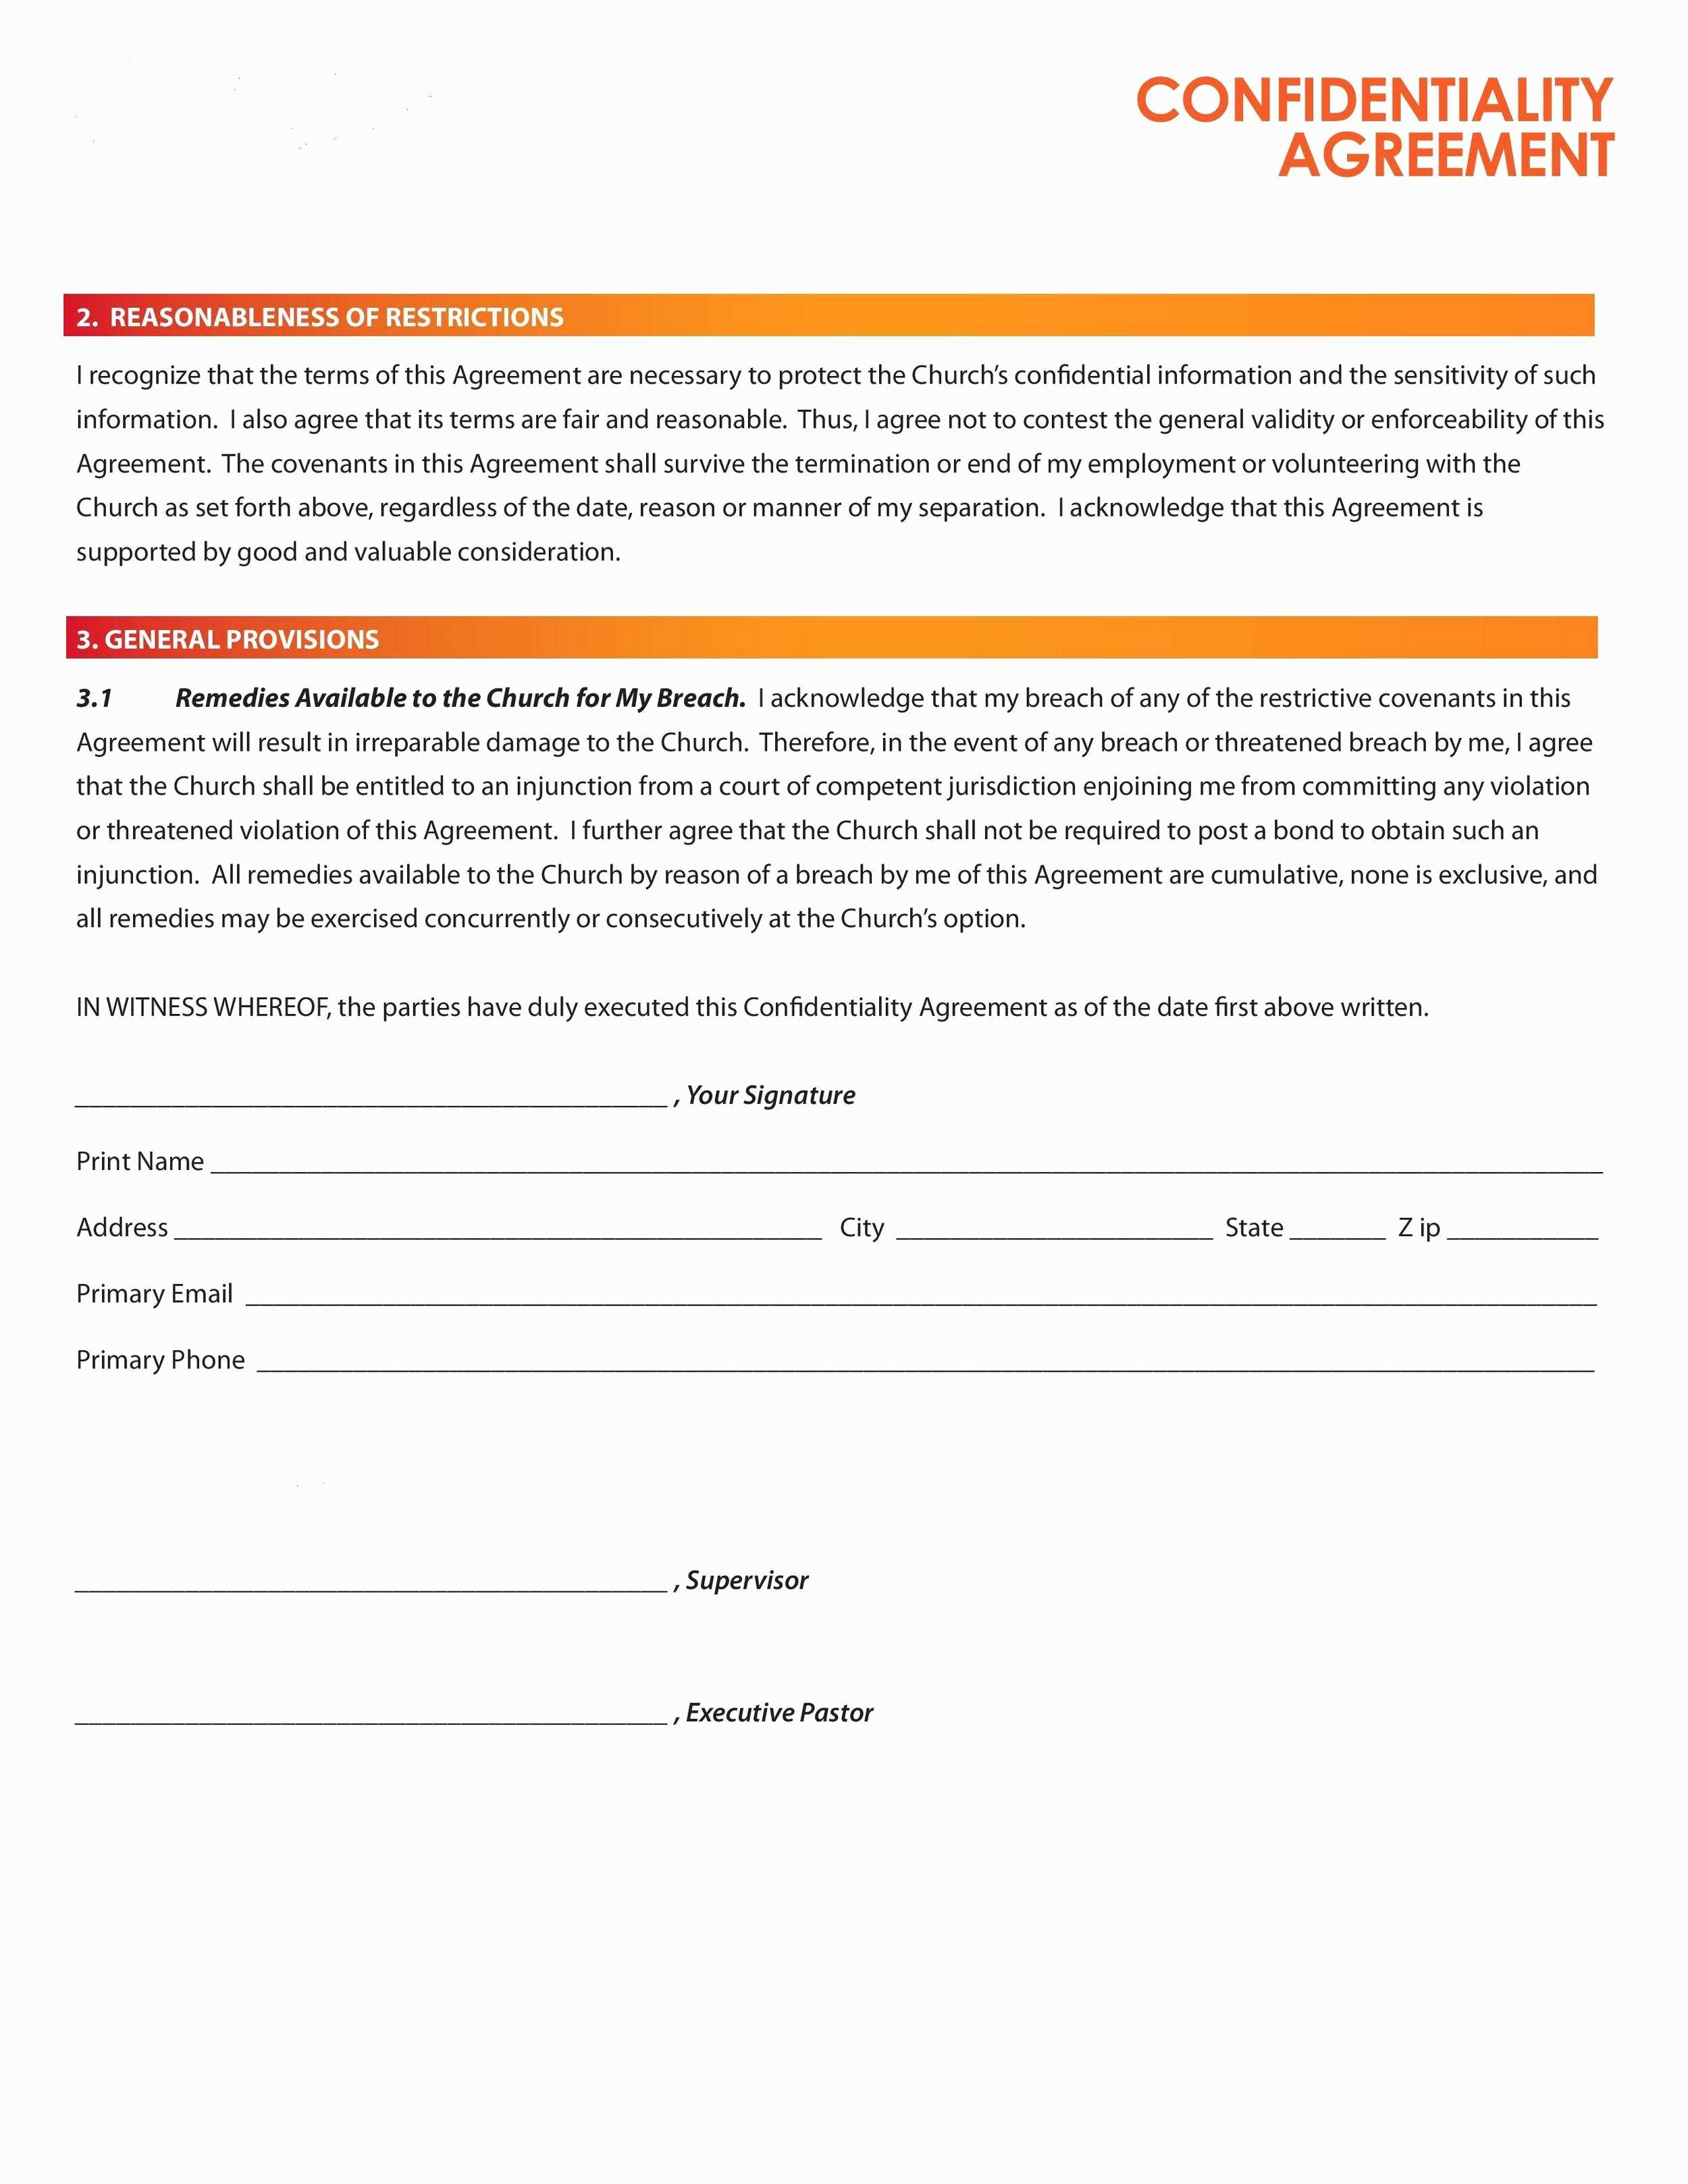 Letter Of Confidentiality and Nondisclosure Template - Lovely Financial Non Disclosure Agreement Template A Place for